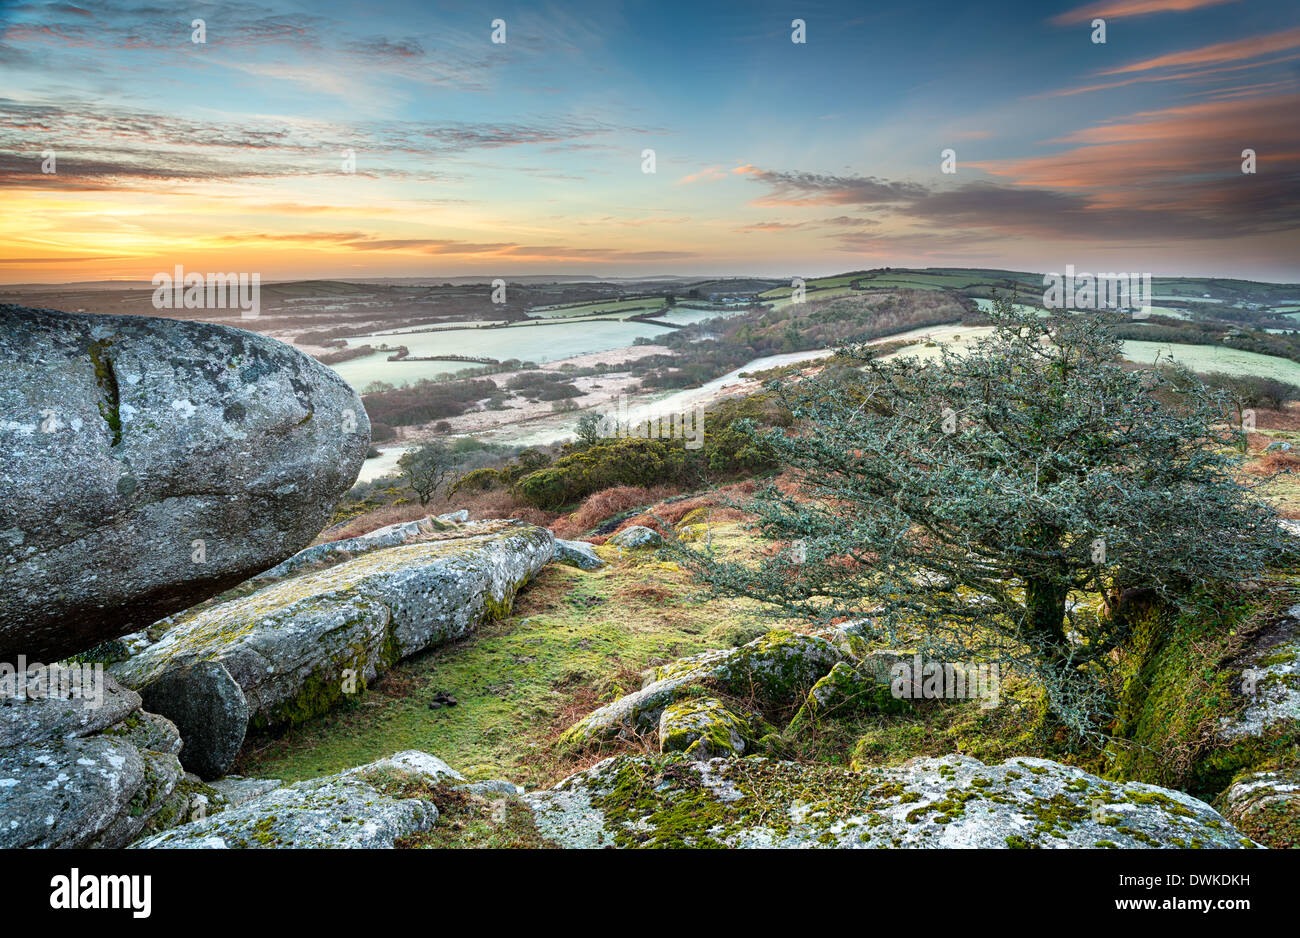 A frosty March sunrise at Helman Tor in Cornwall - Stock Image